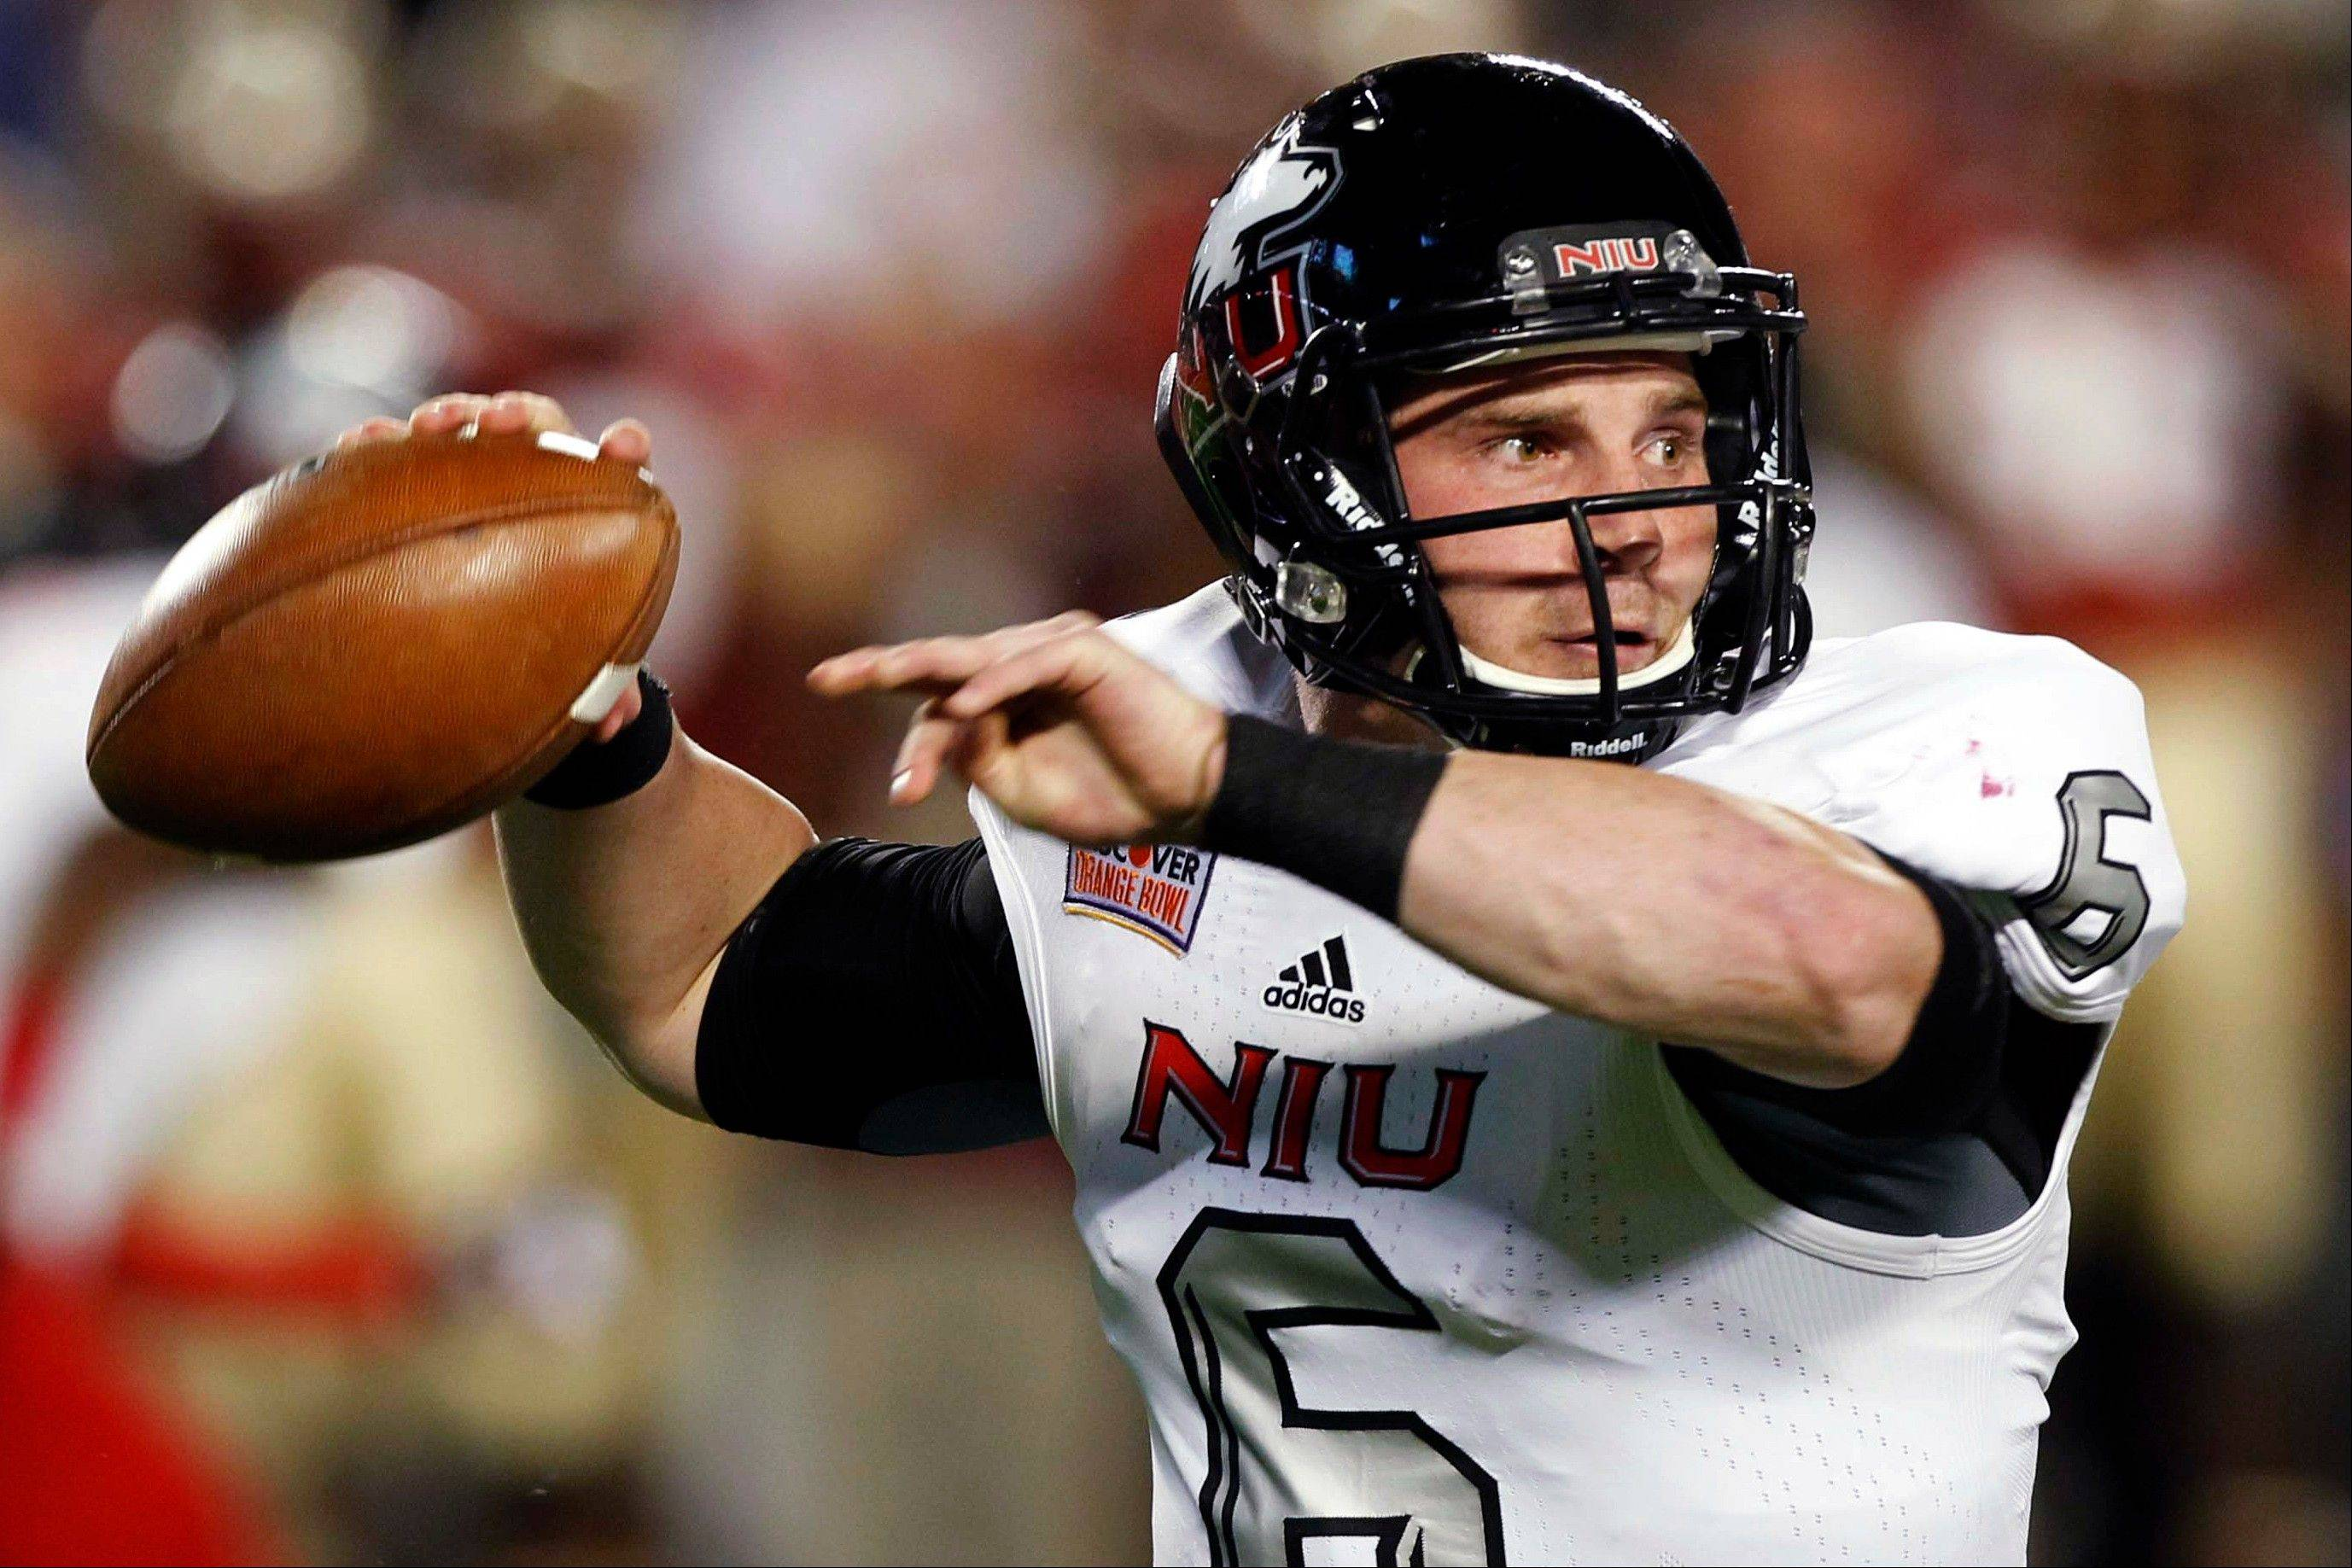 Northern Illinois University quarterback Jordan Lynch has been named to the Johnny Unitas Golden Arm Award Watch List.